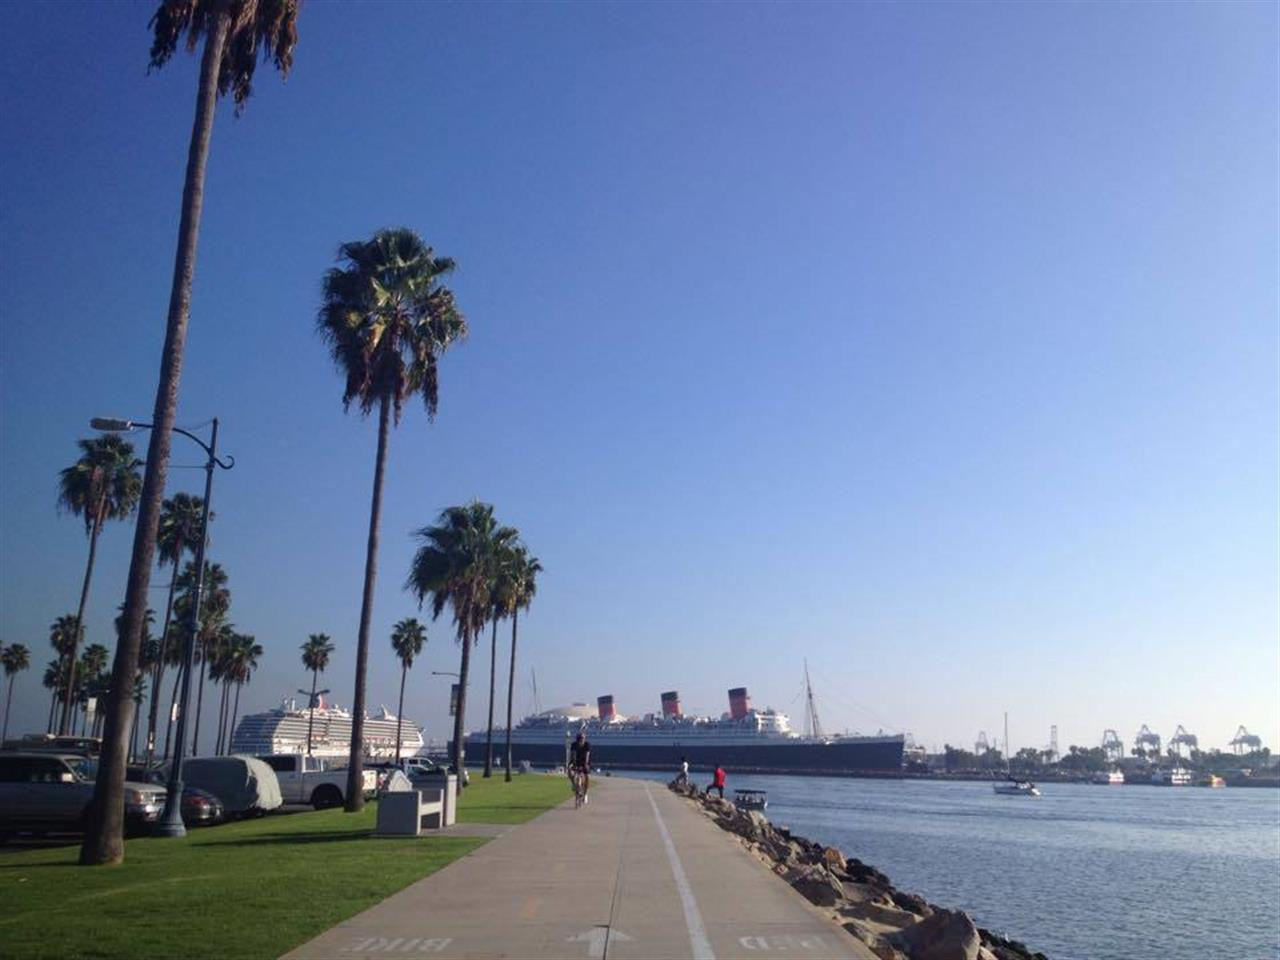 View of the Queen Mary in Long Beach, CA